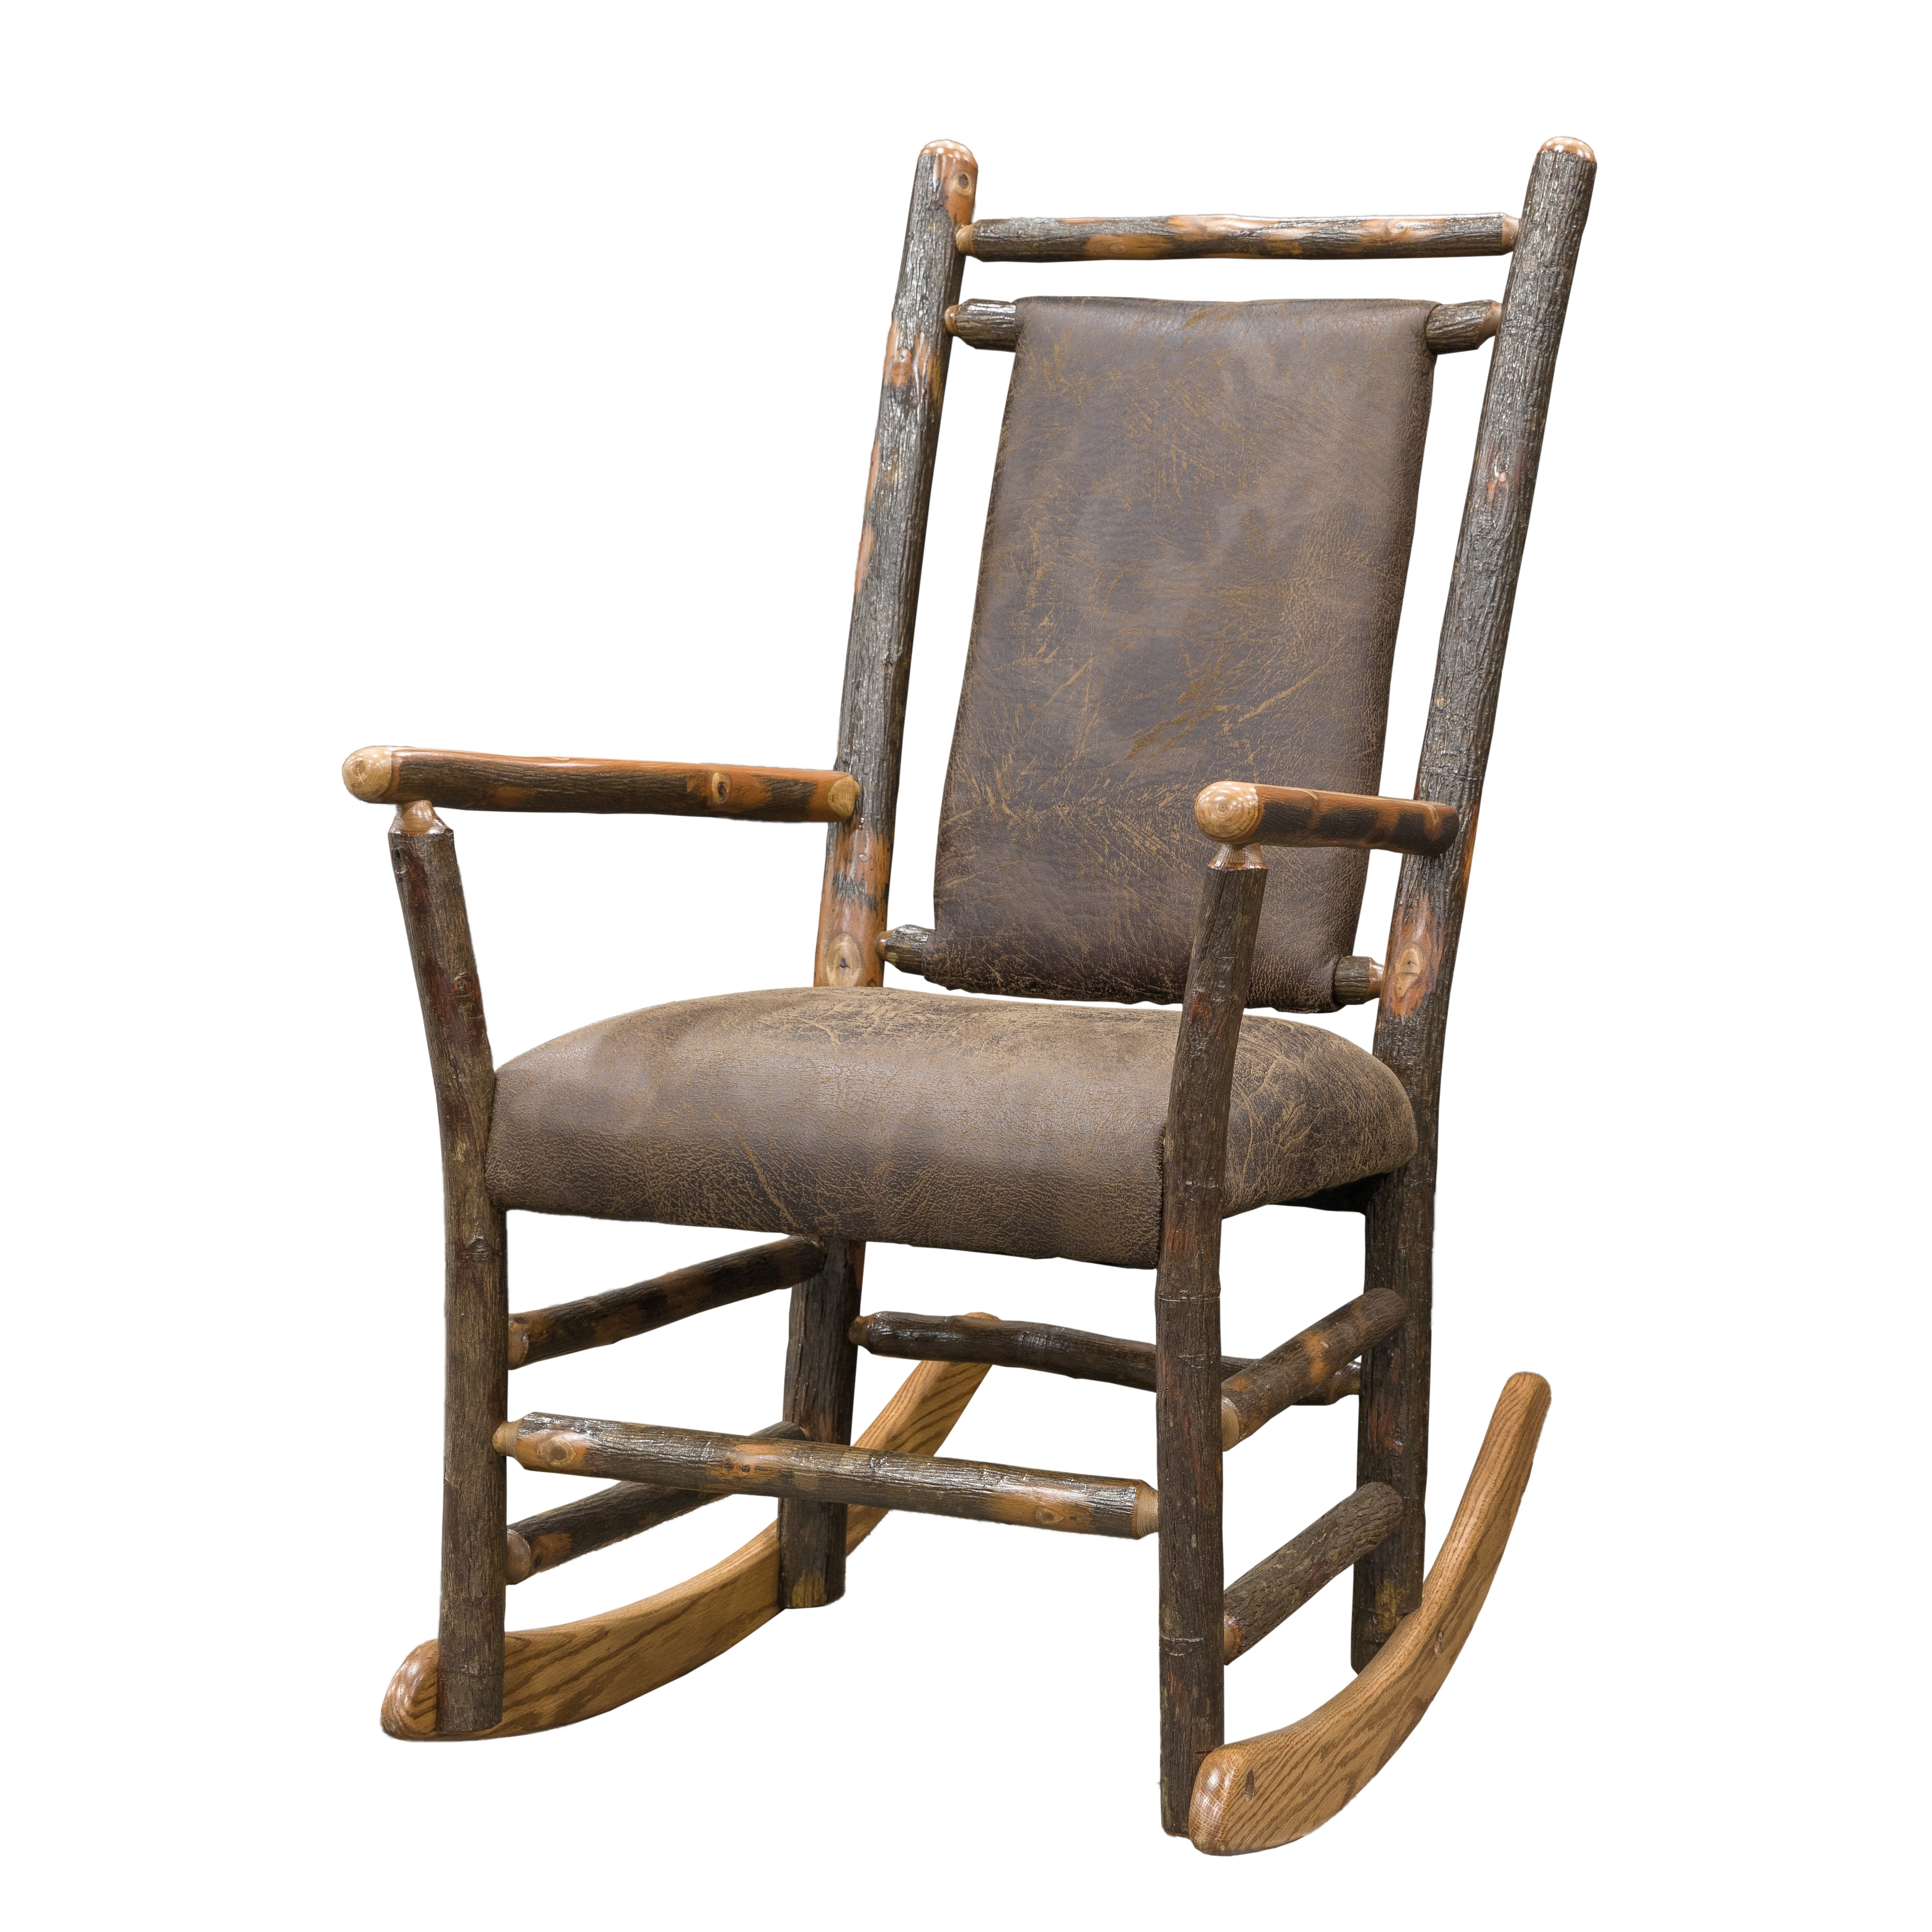 Rocking Chairs With Lumbar Support In Trendy Rustic Hickory Rocking Chair With Faux Brown Leather Seat And Back (View 12 of 15)